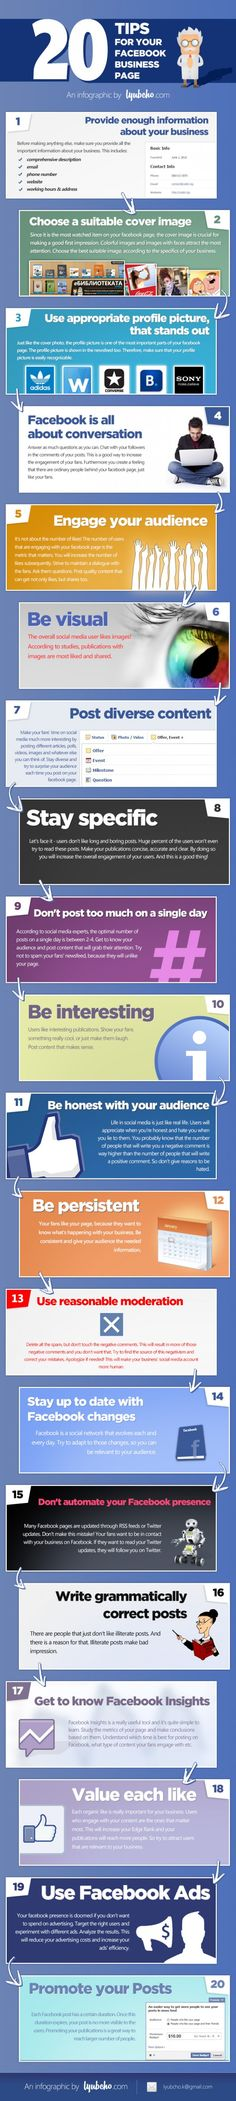 20 Tips for your Facebook Business Page Infographic